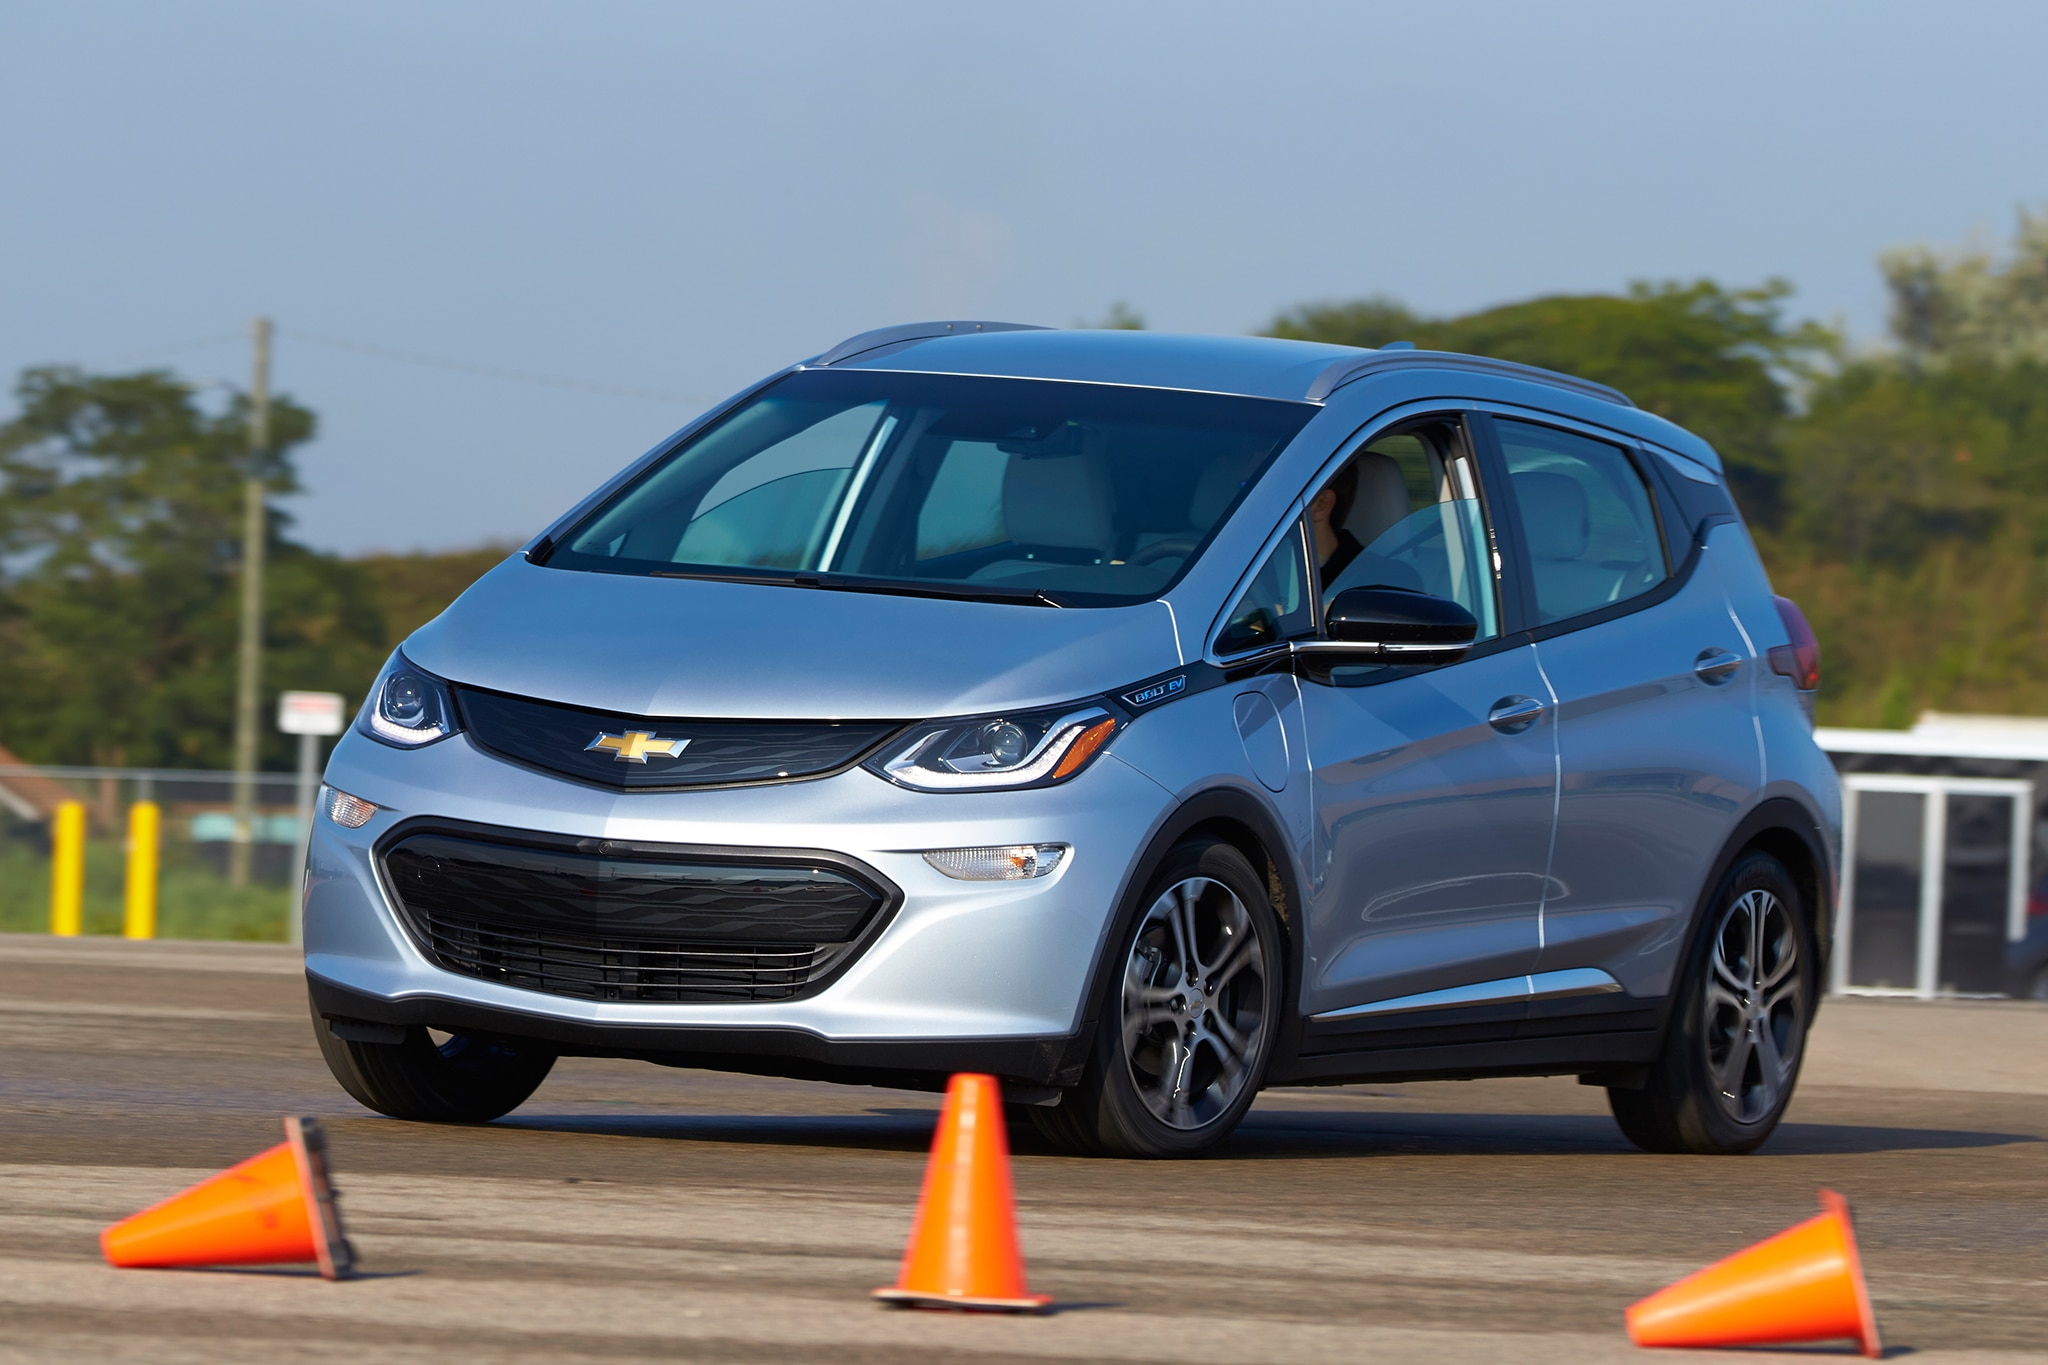 2017 Chevrolet Bolt EV Front Three Quarter In Motion 01